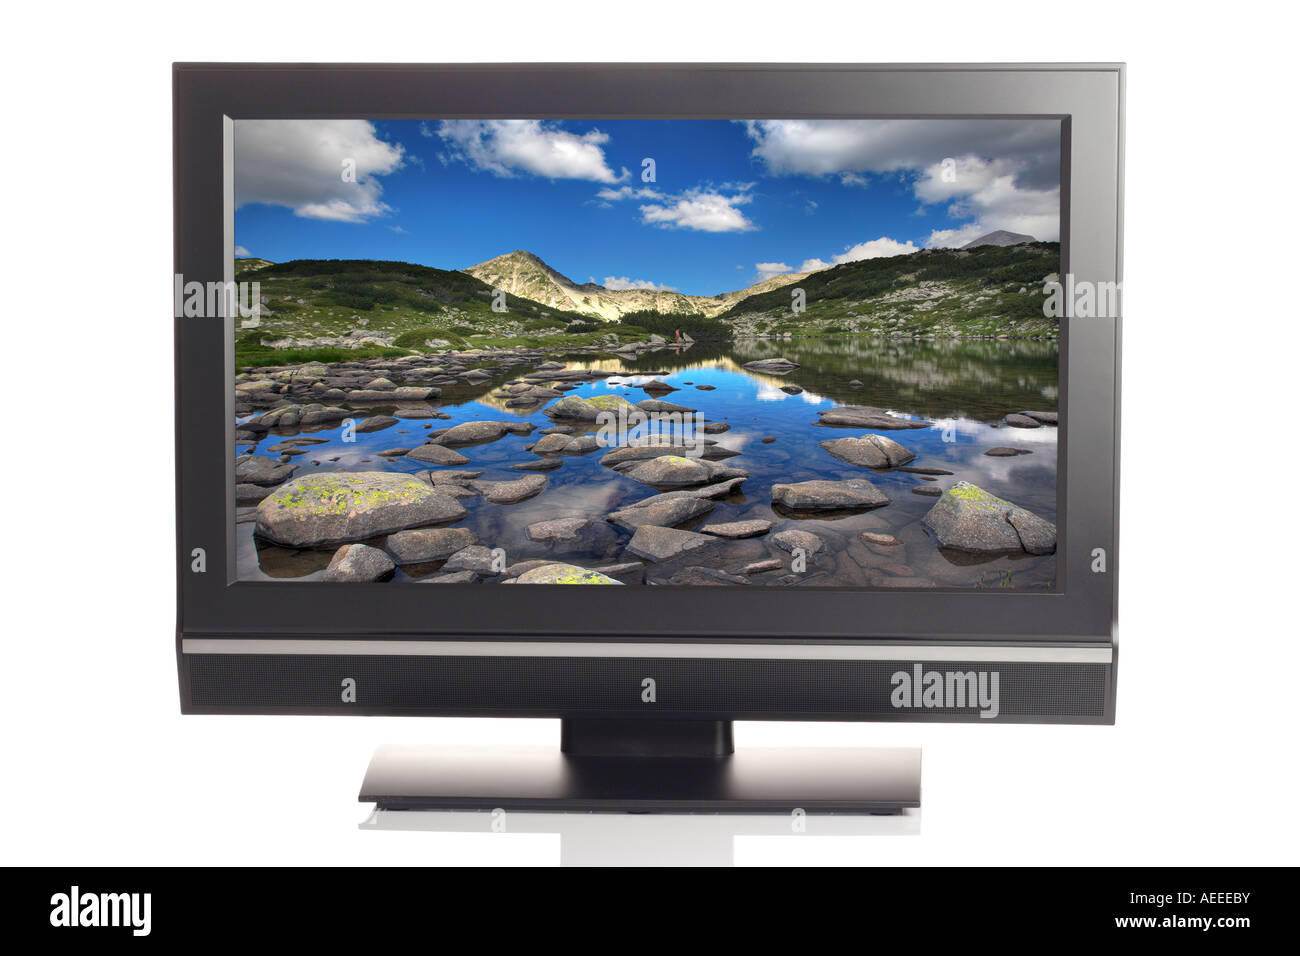 LCD tv displaying a beautiful picture - Stock Image